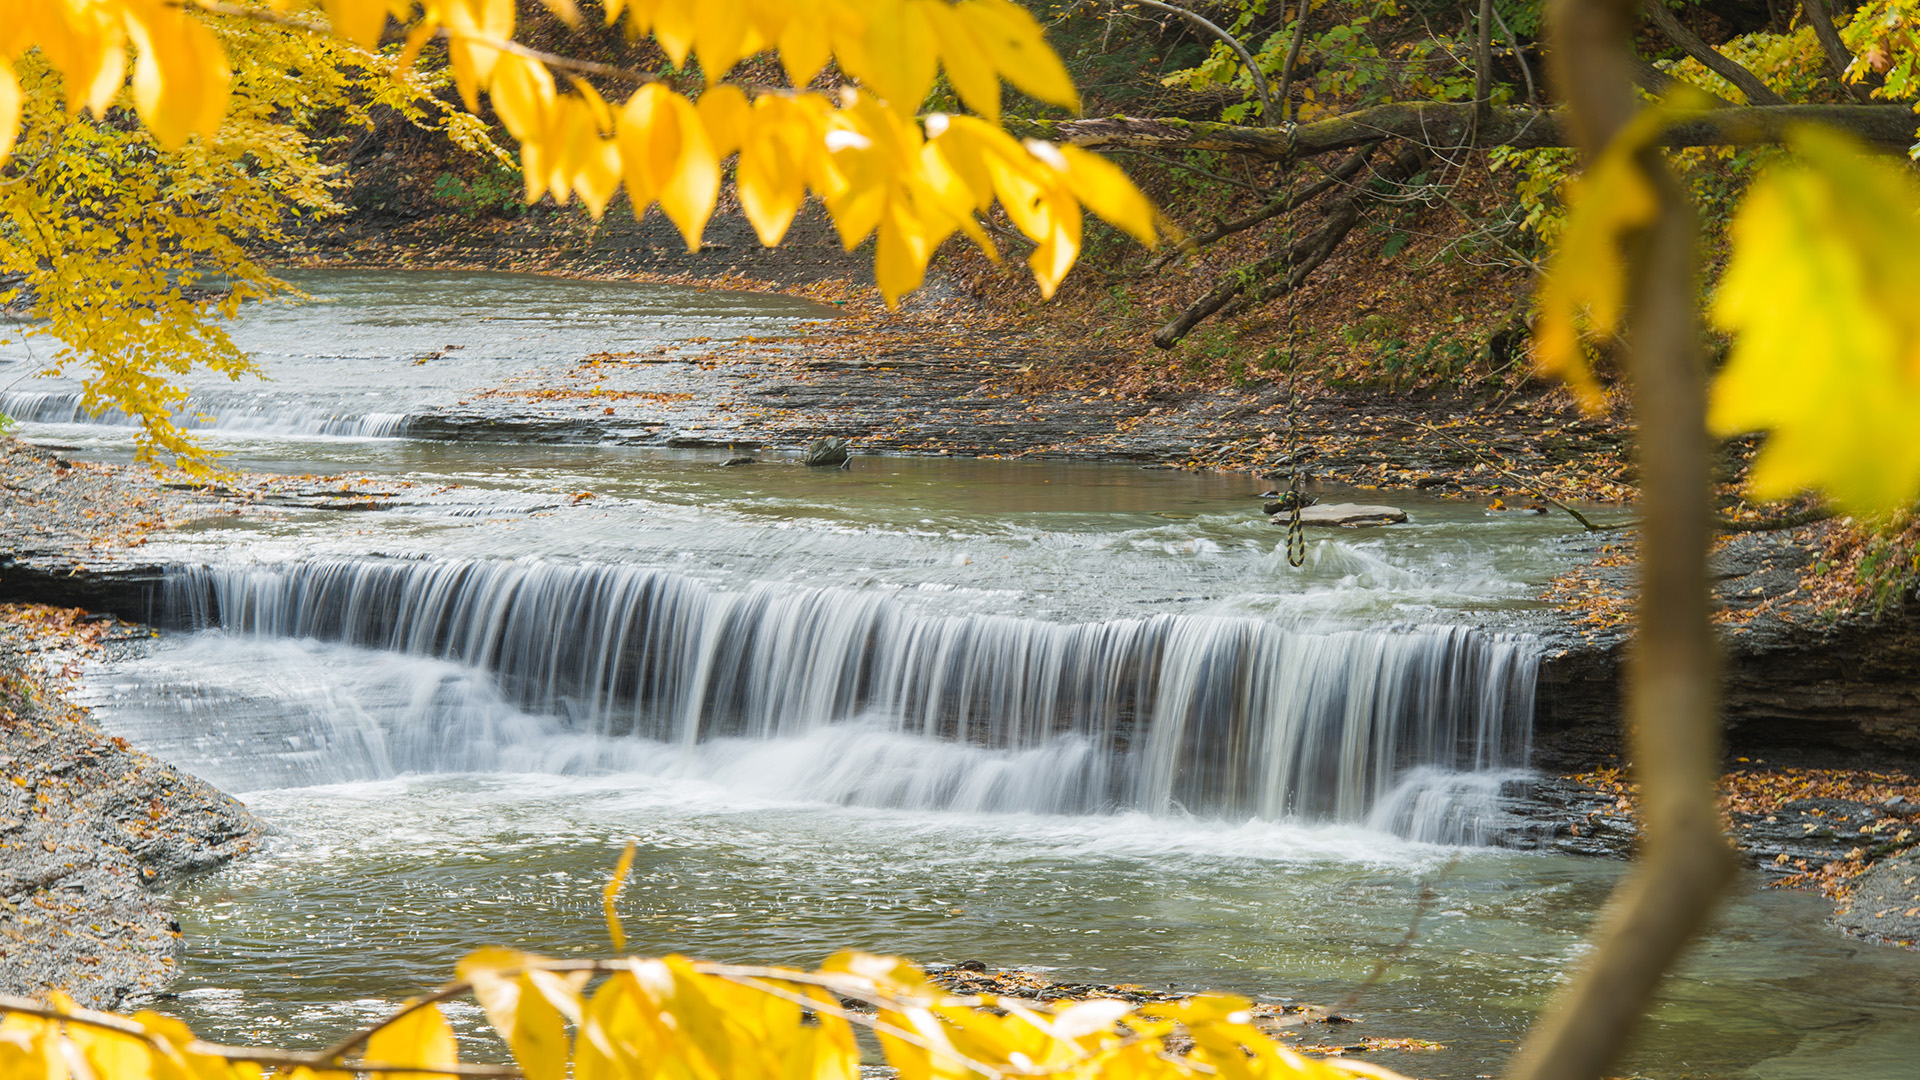 A waterfall at Wintergreen Gorge framed by yellow autumn leaves